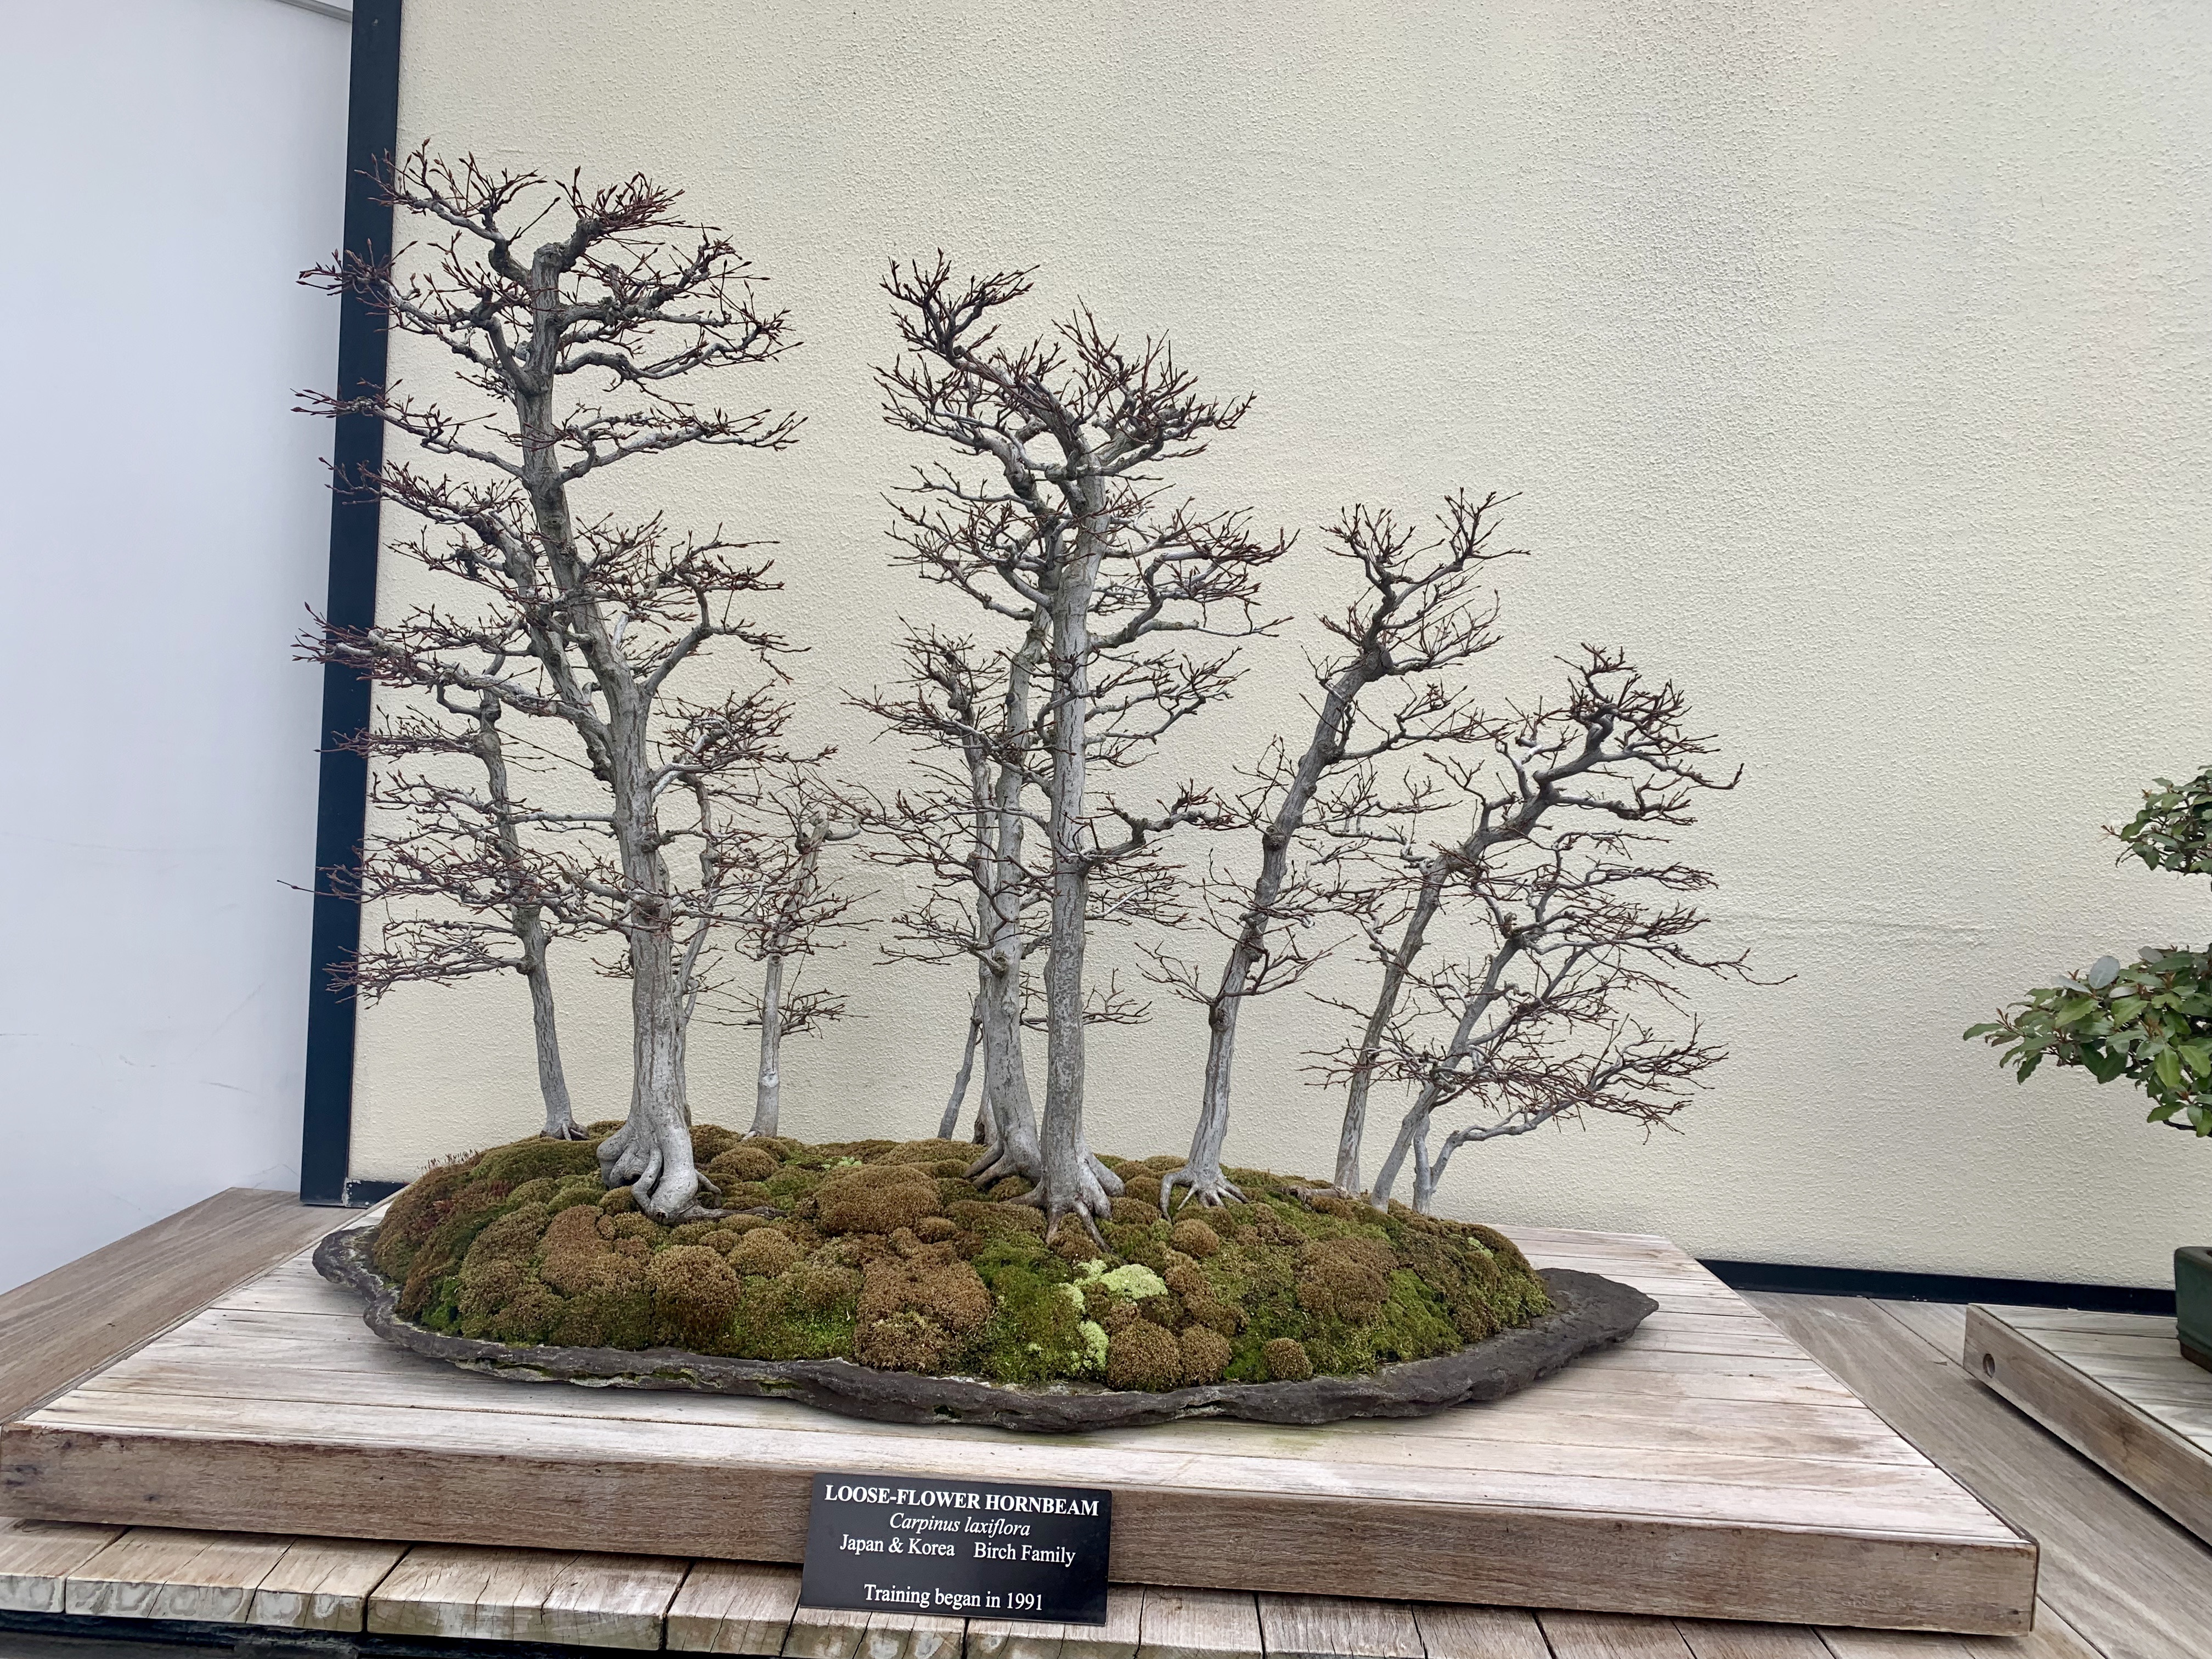 Collection of birches in the same bonsai pot, arranged like a copse in the woods.